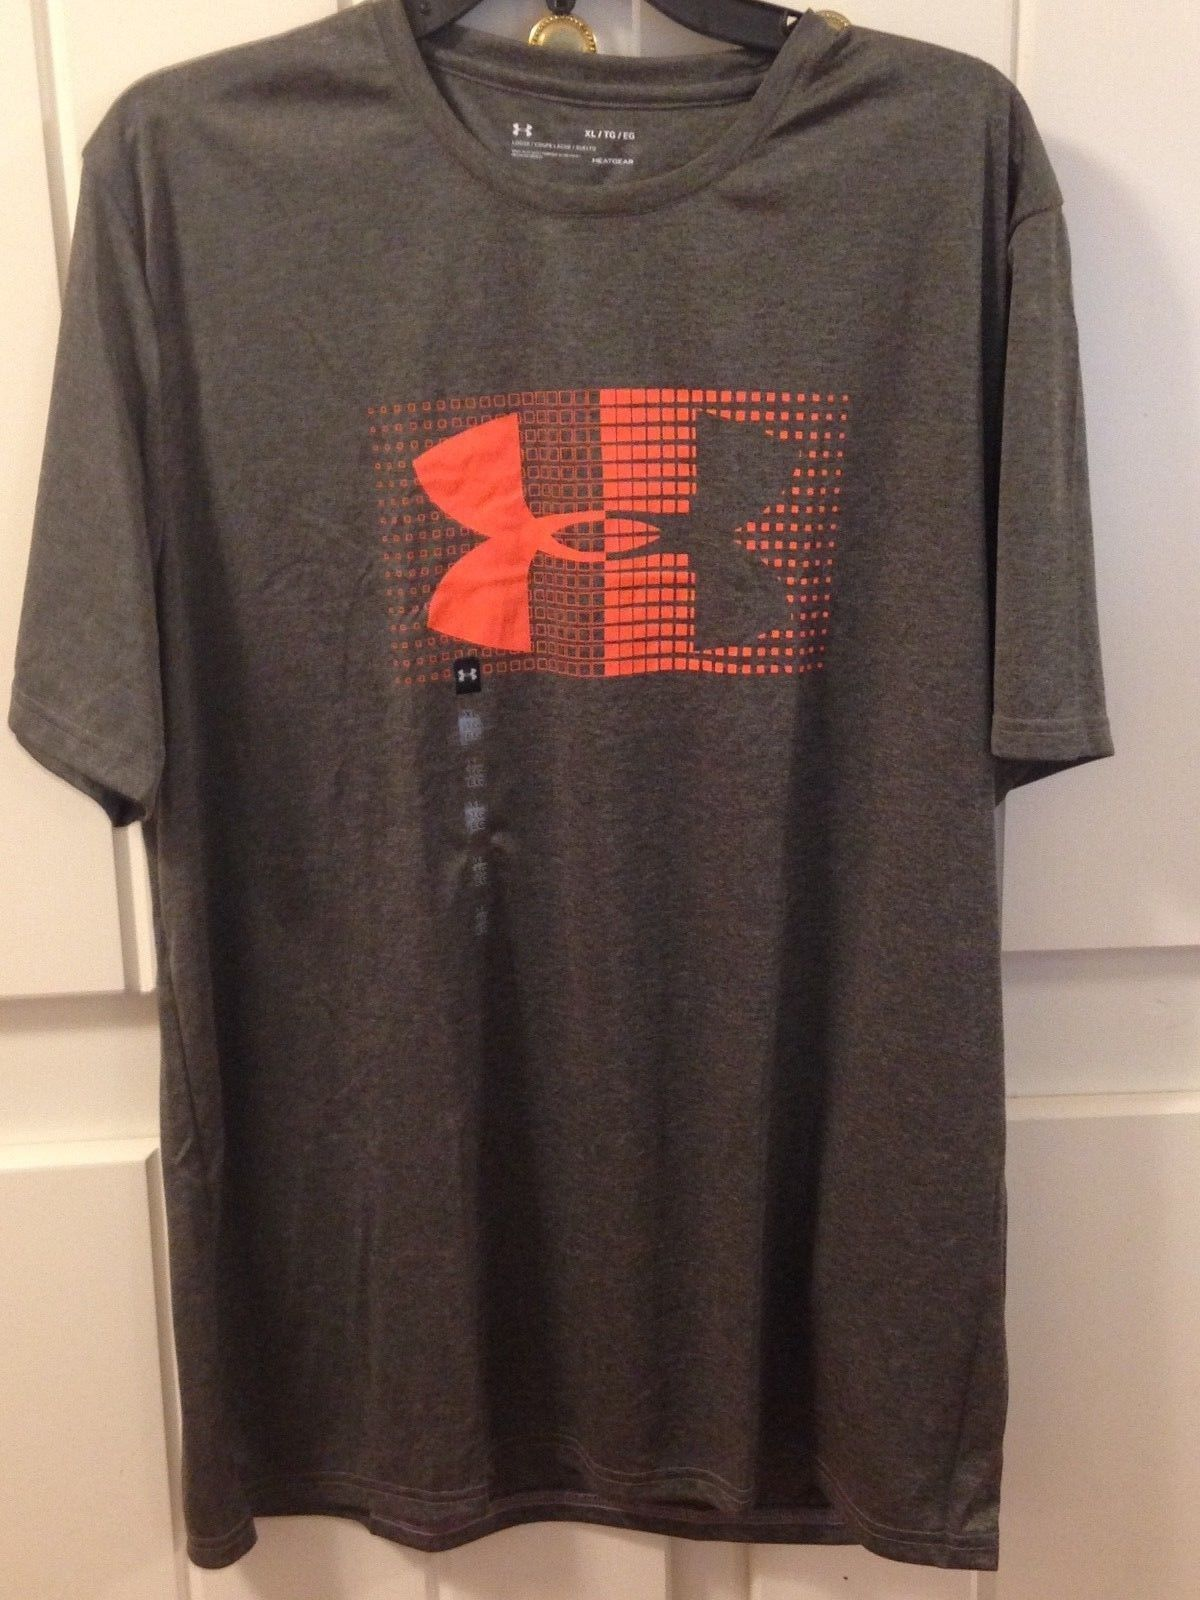 80eeeee91df94 New Under Armour Men's Velocity Graphic and 50 similar items. S l1600